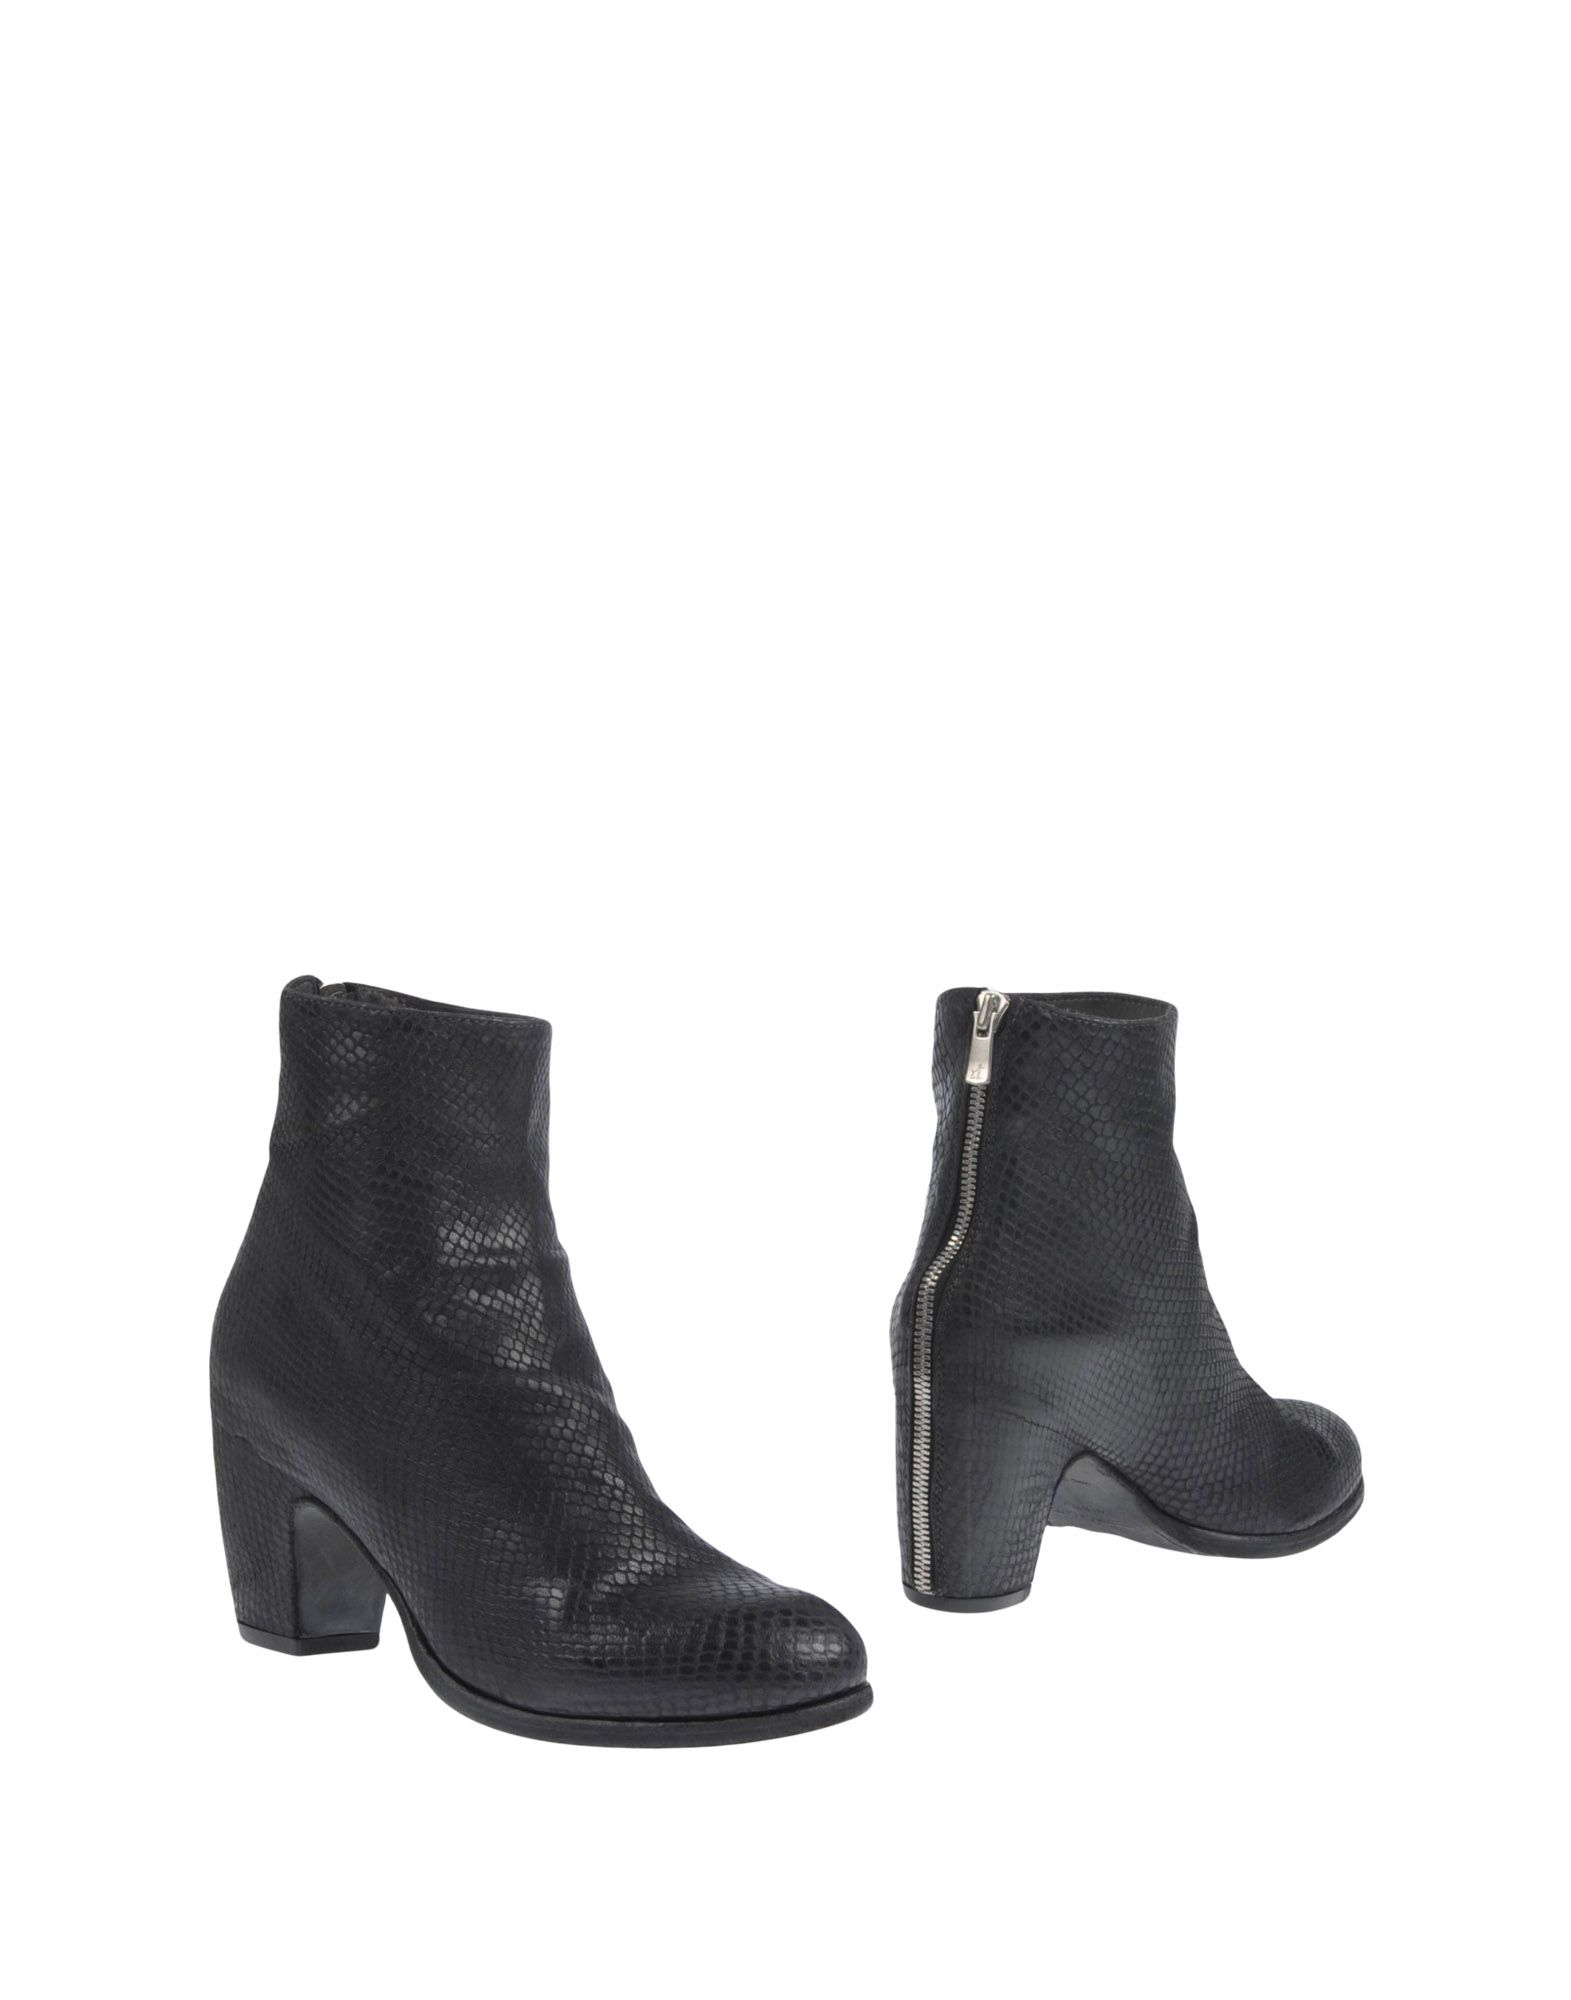 Officine Creative Italia Ankle Boot - Women Officine online Creative Italia Ankle Boots online Officine on  United Kingdom - 11446326PD 6b6488